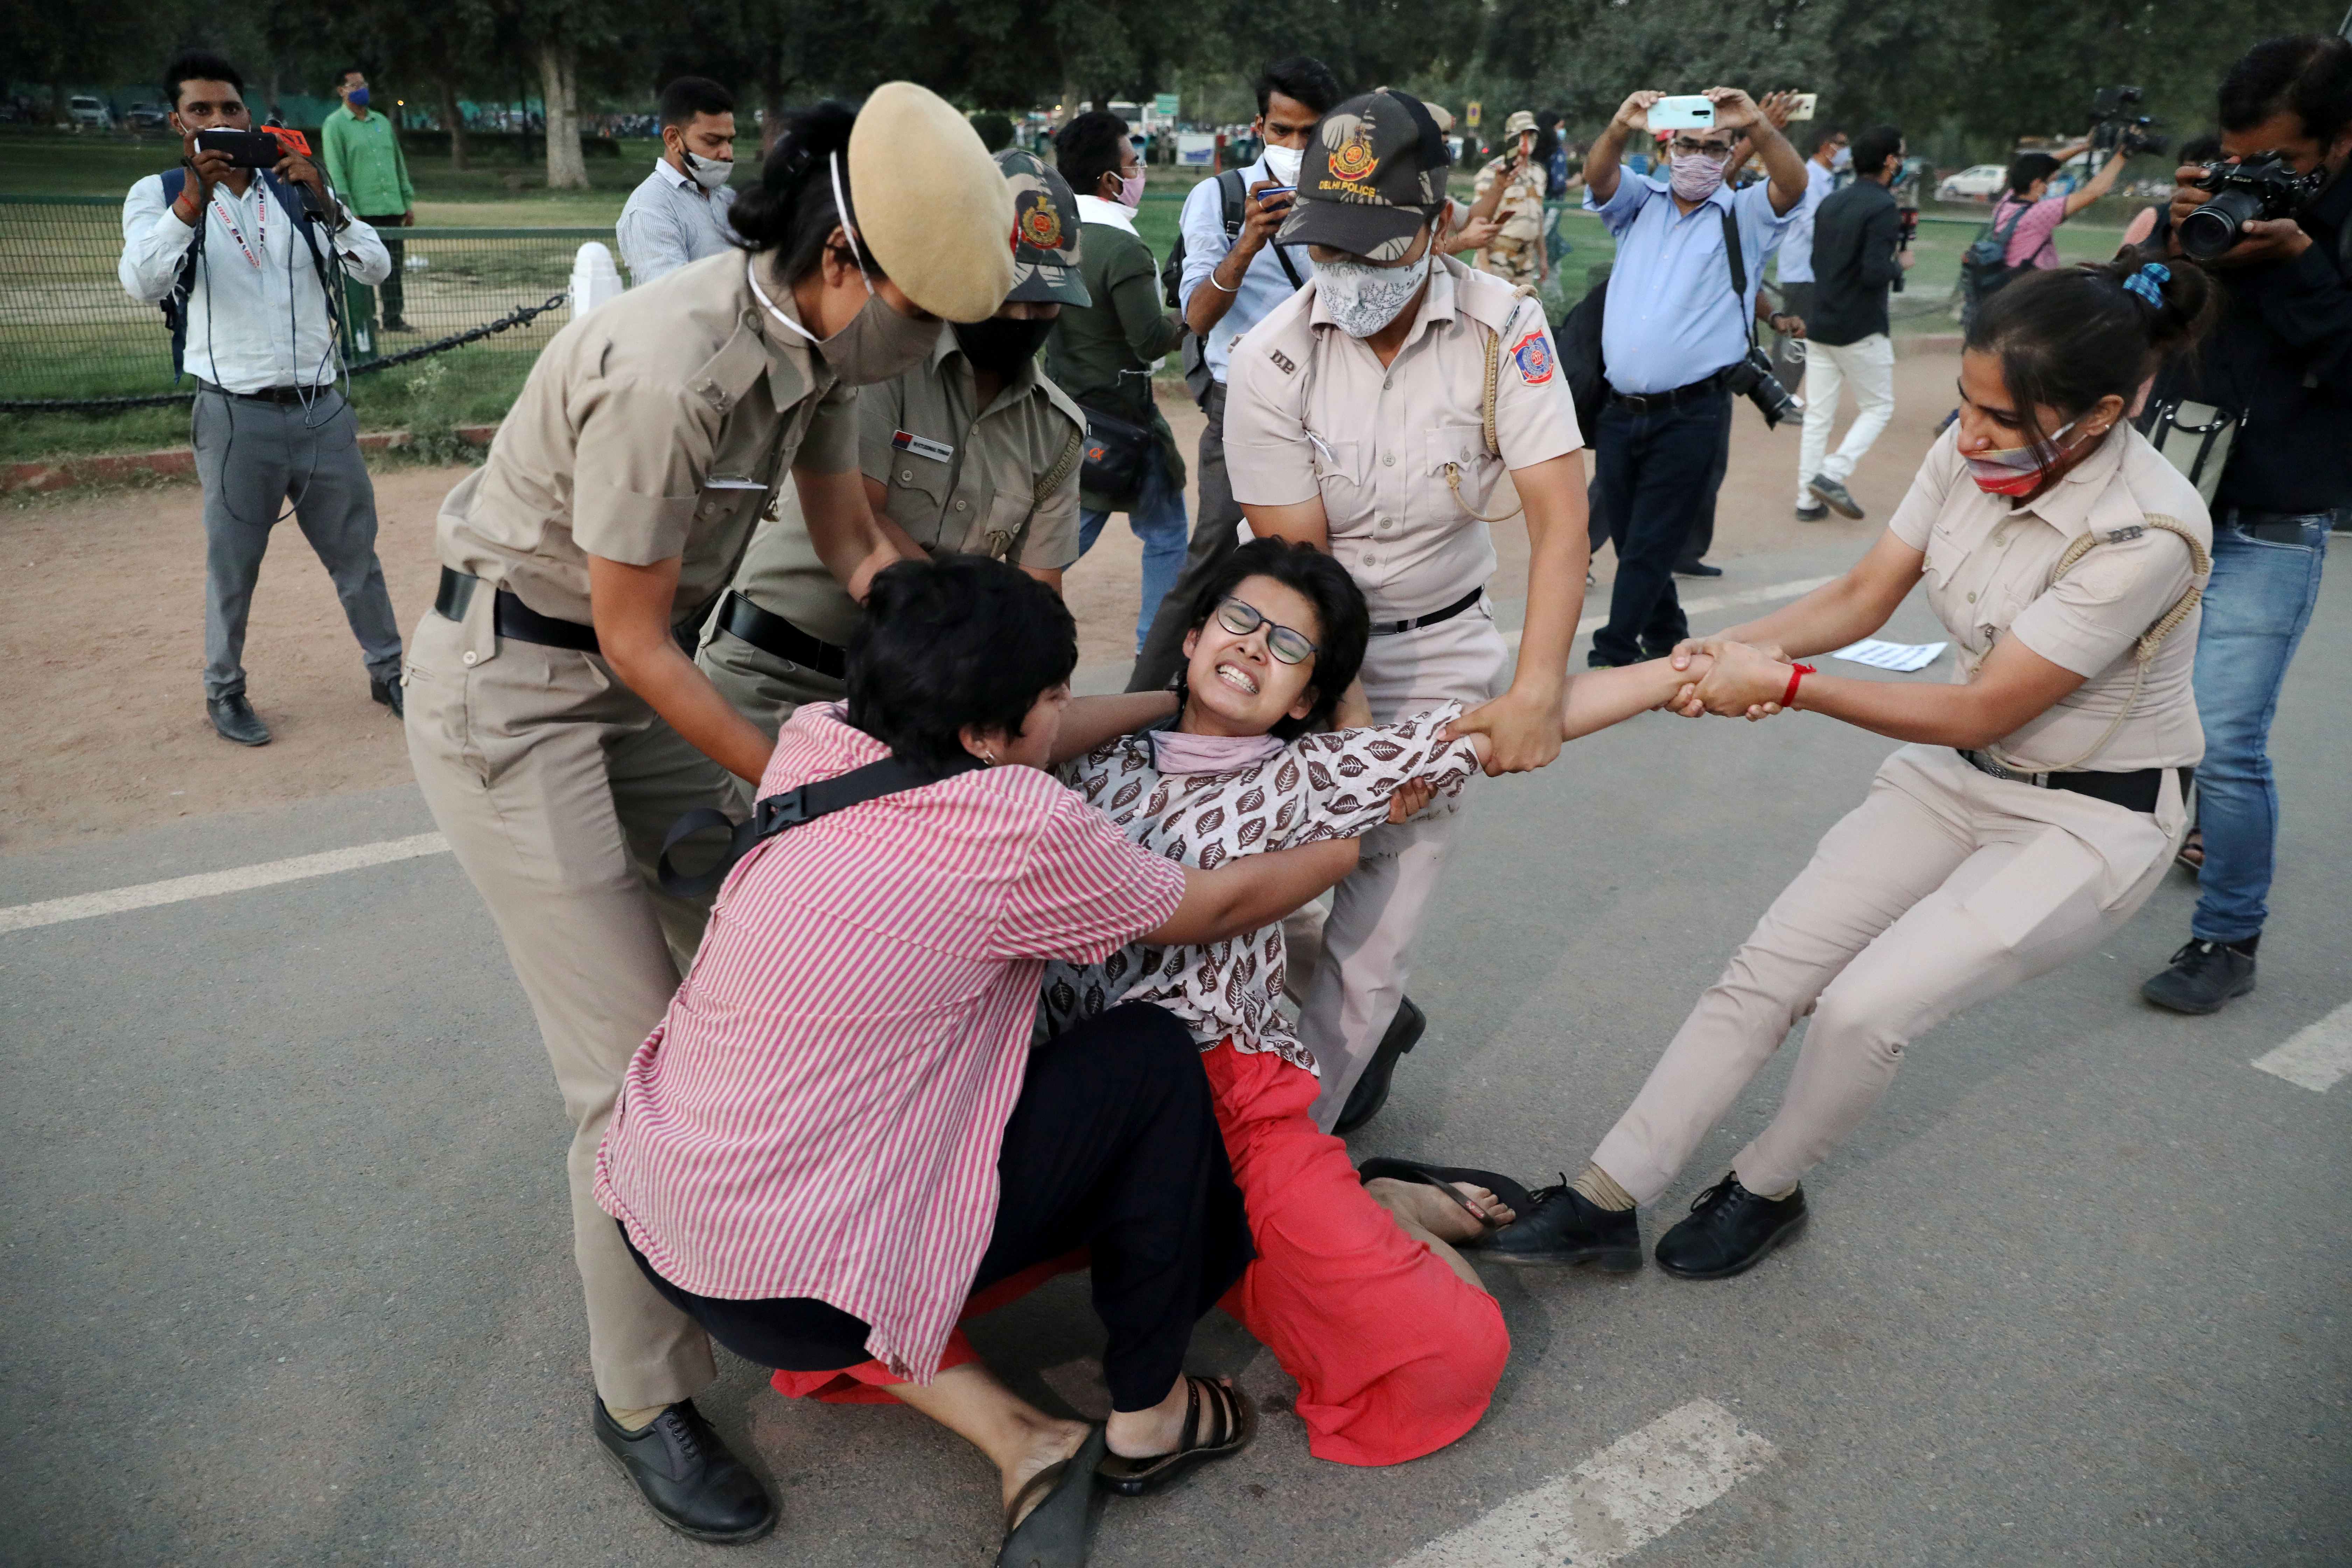 A demonstrator is detained by police during a protest after the death of a rape victim, on Rajpath near India Gate, in New Delhi, India, September 30, 2020. Photo: Reuters